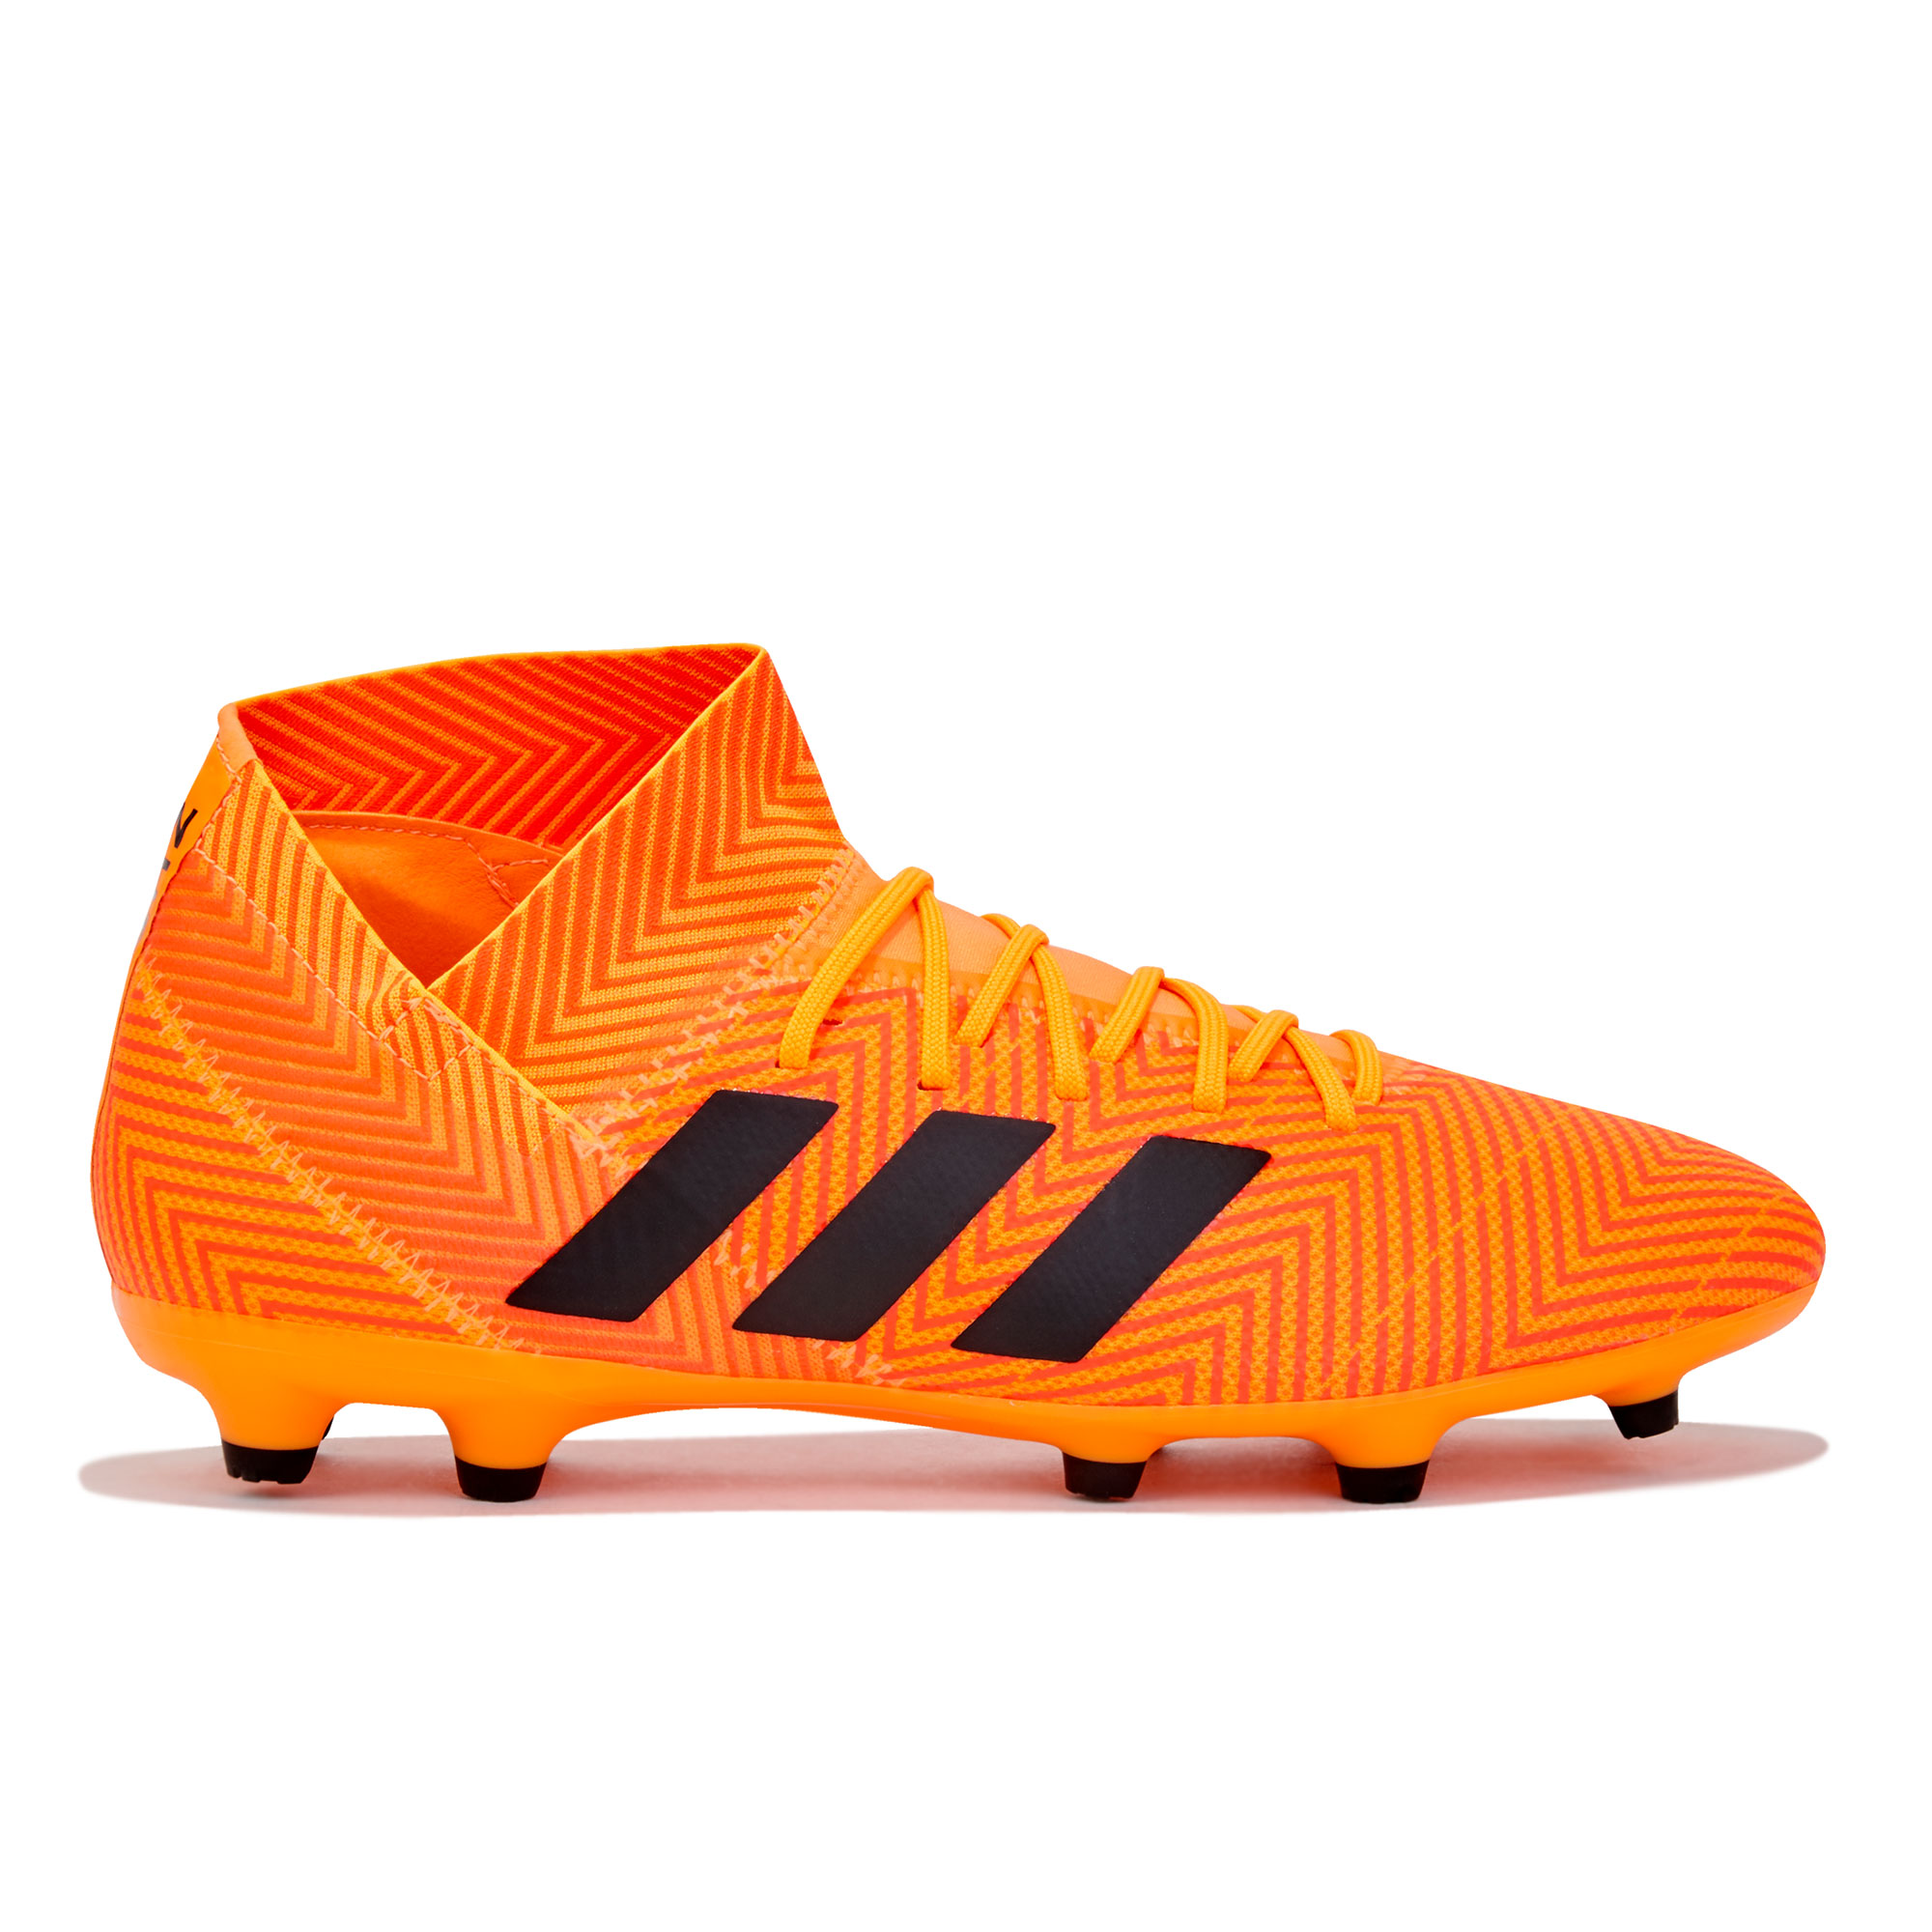 Image of adidas Nemeziz 18.3 Firm Ground Football Boots - Orange